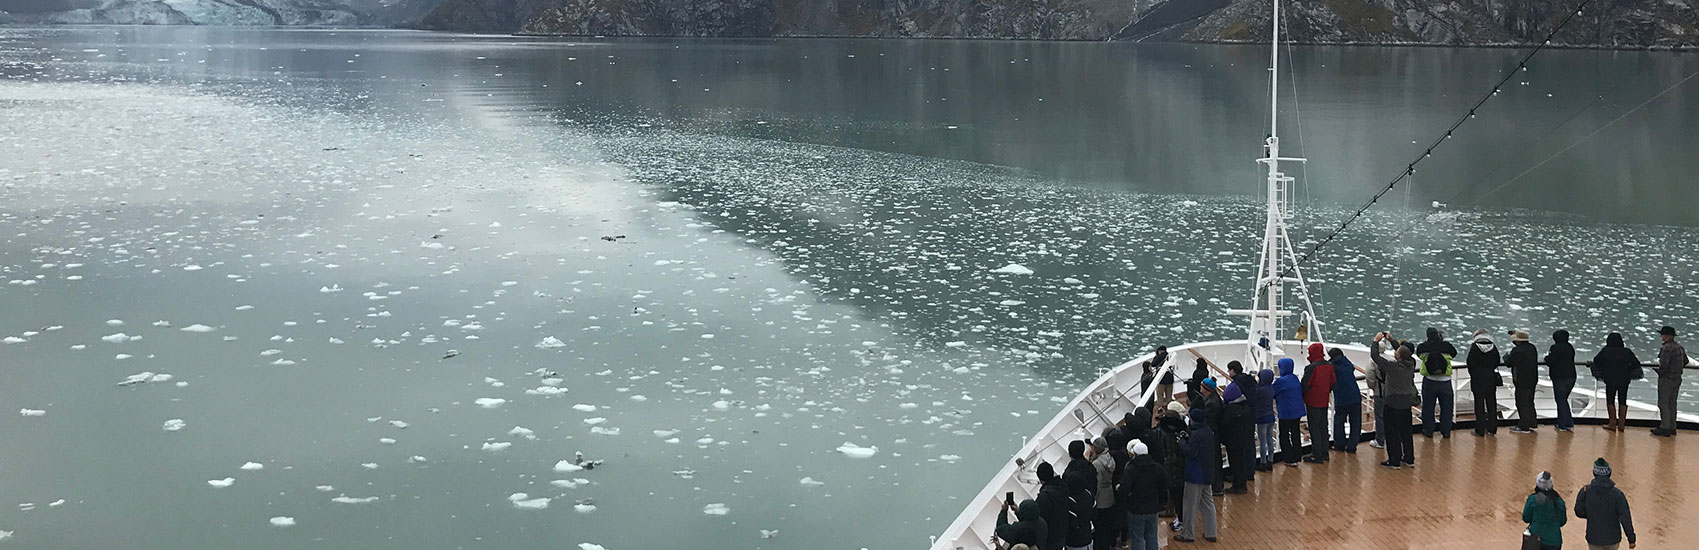 Limited Time Offer to Alaska with Holland America 1